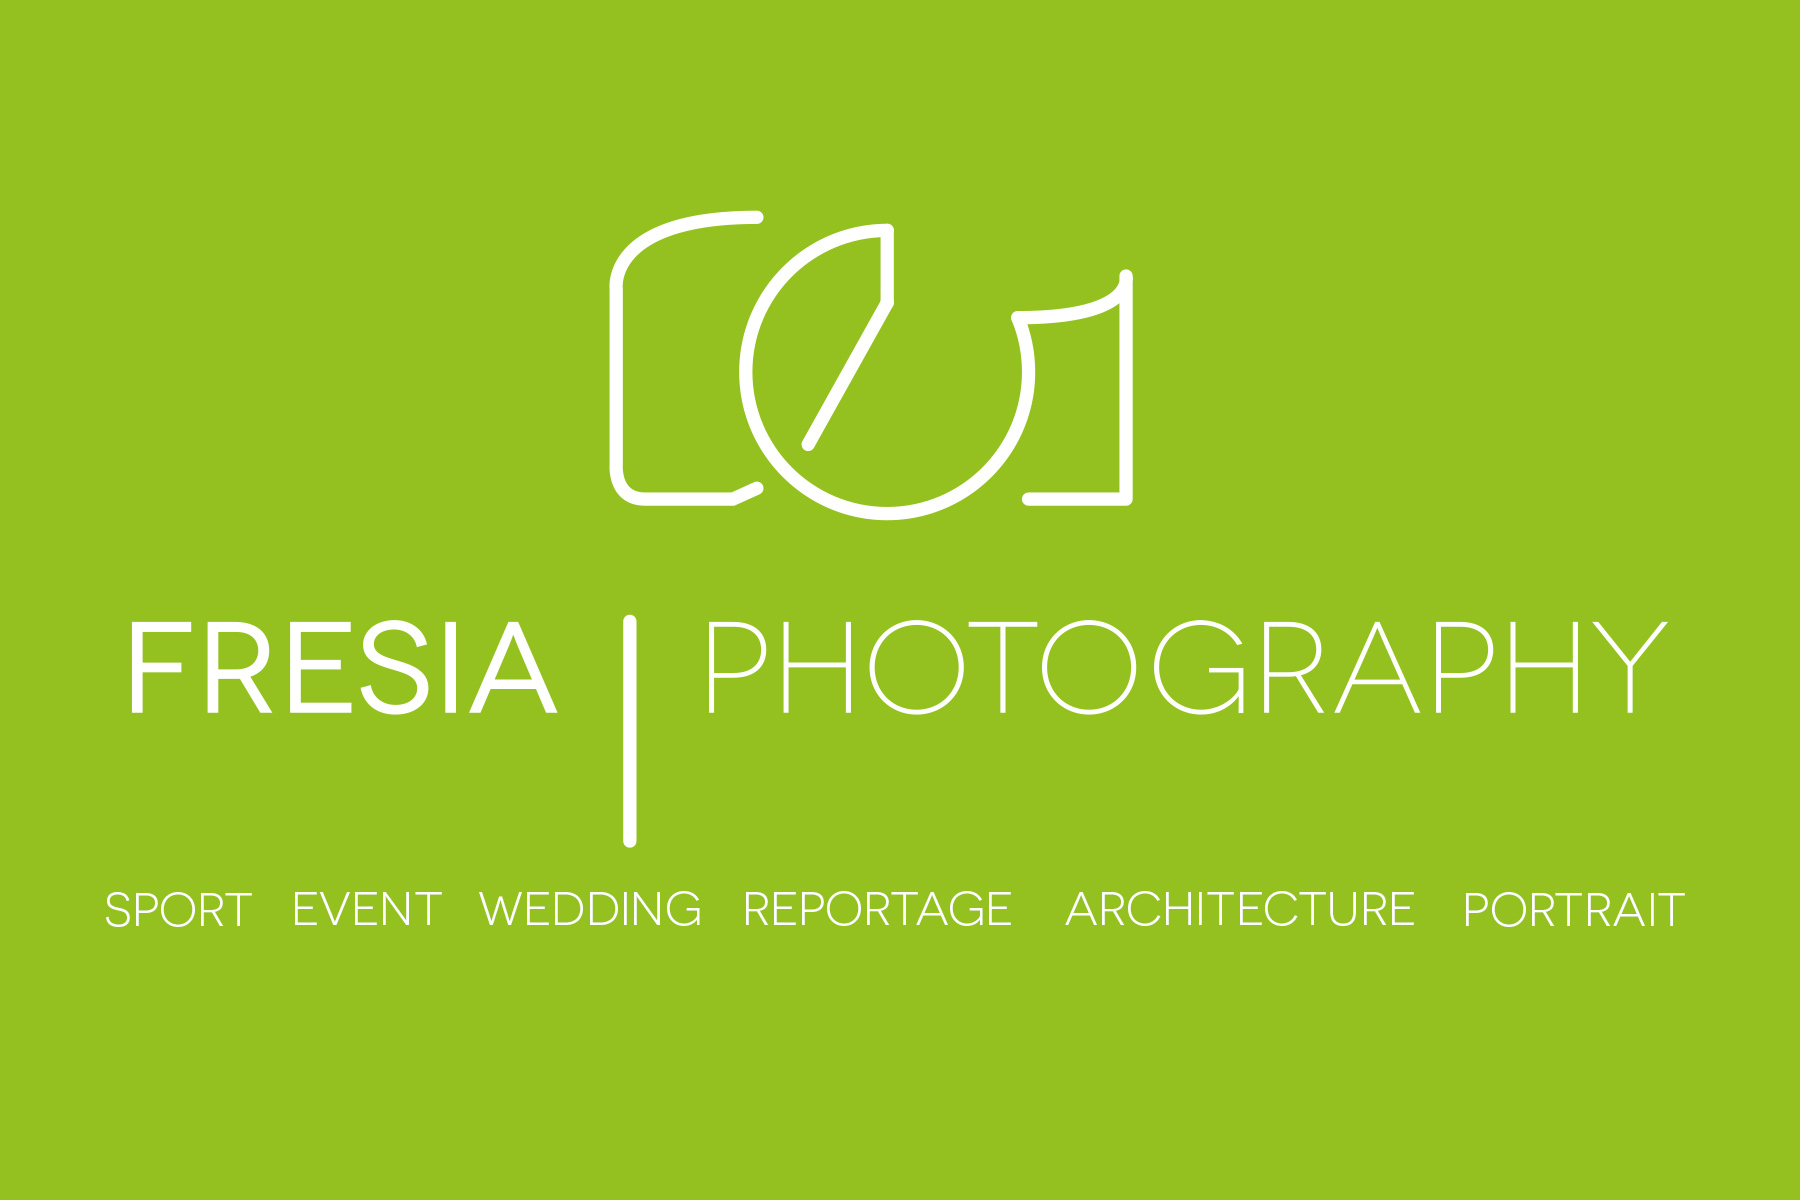 Fresia Photography